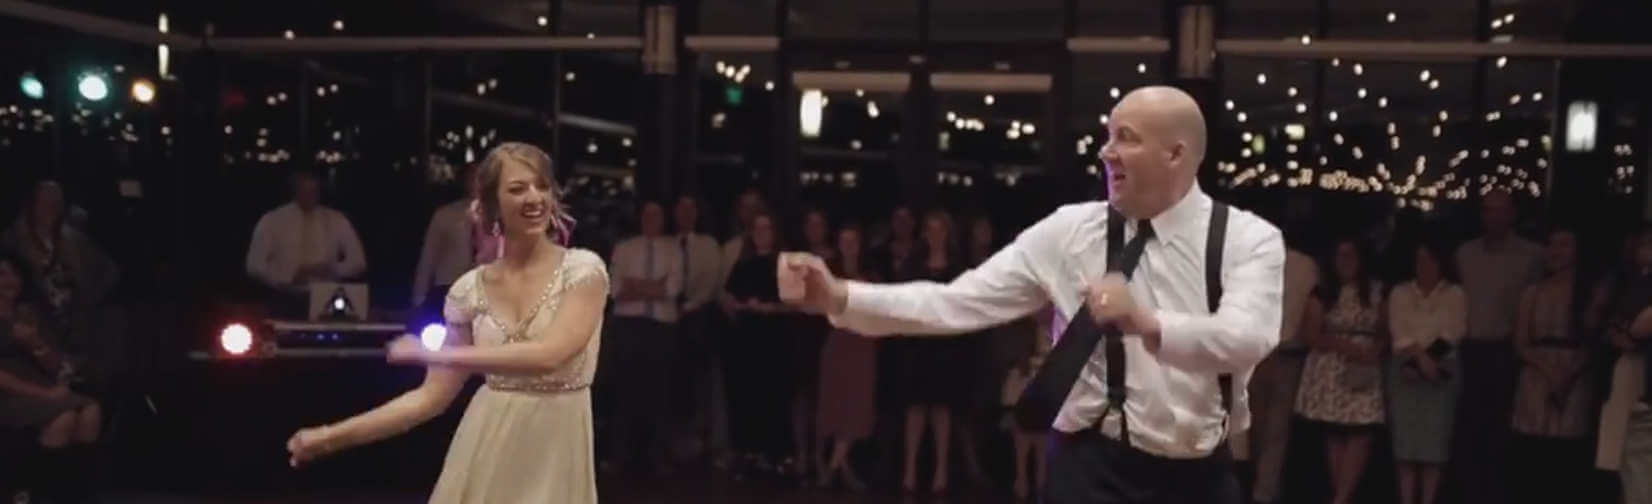 Dad outdances his own daughter at her wedding